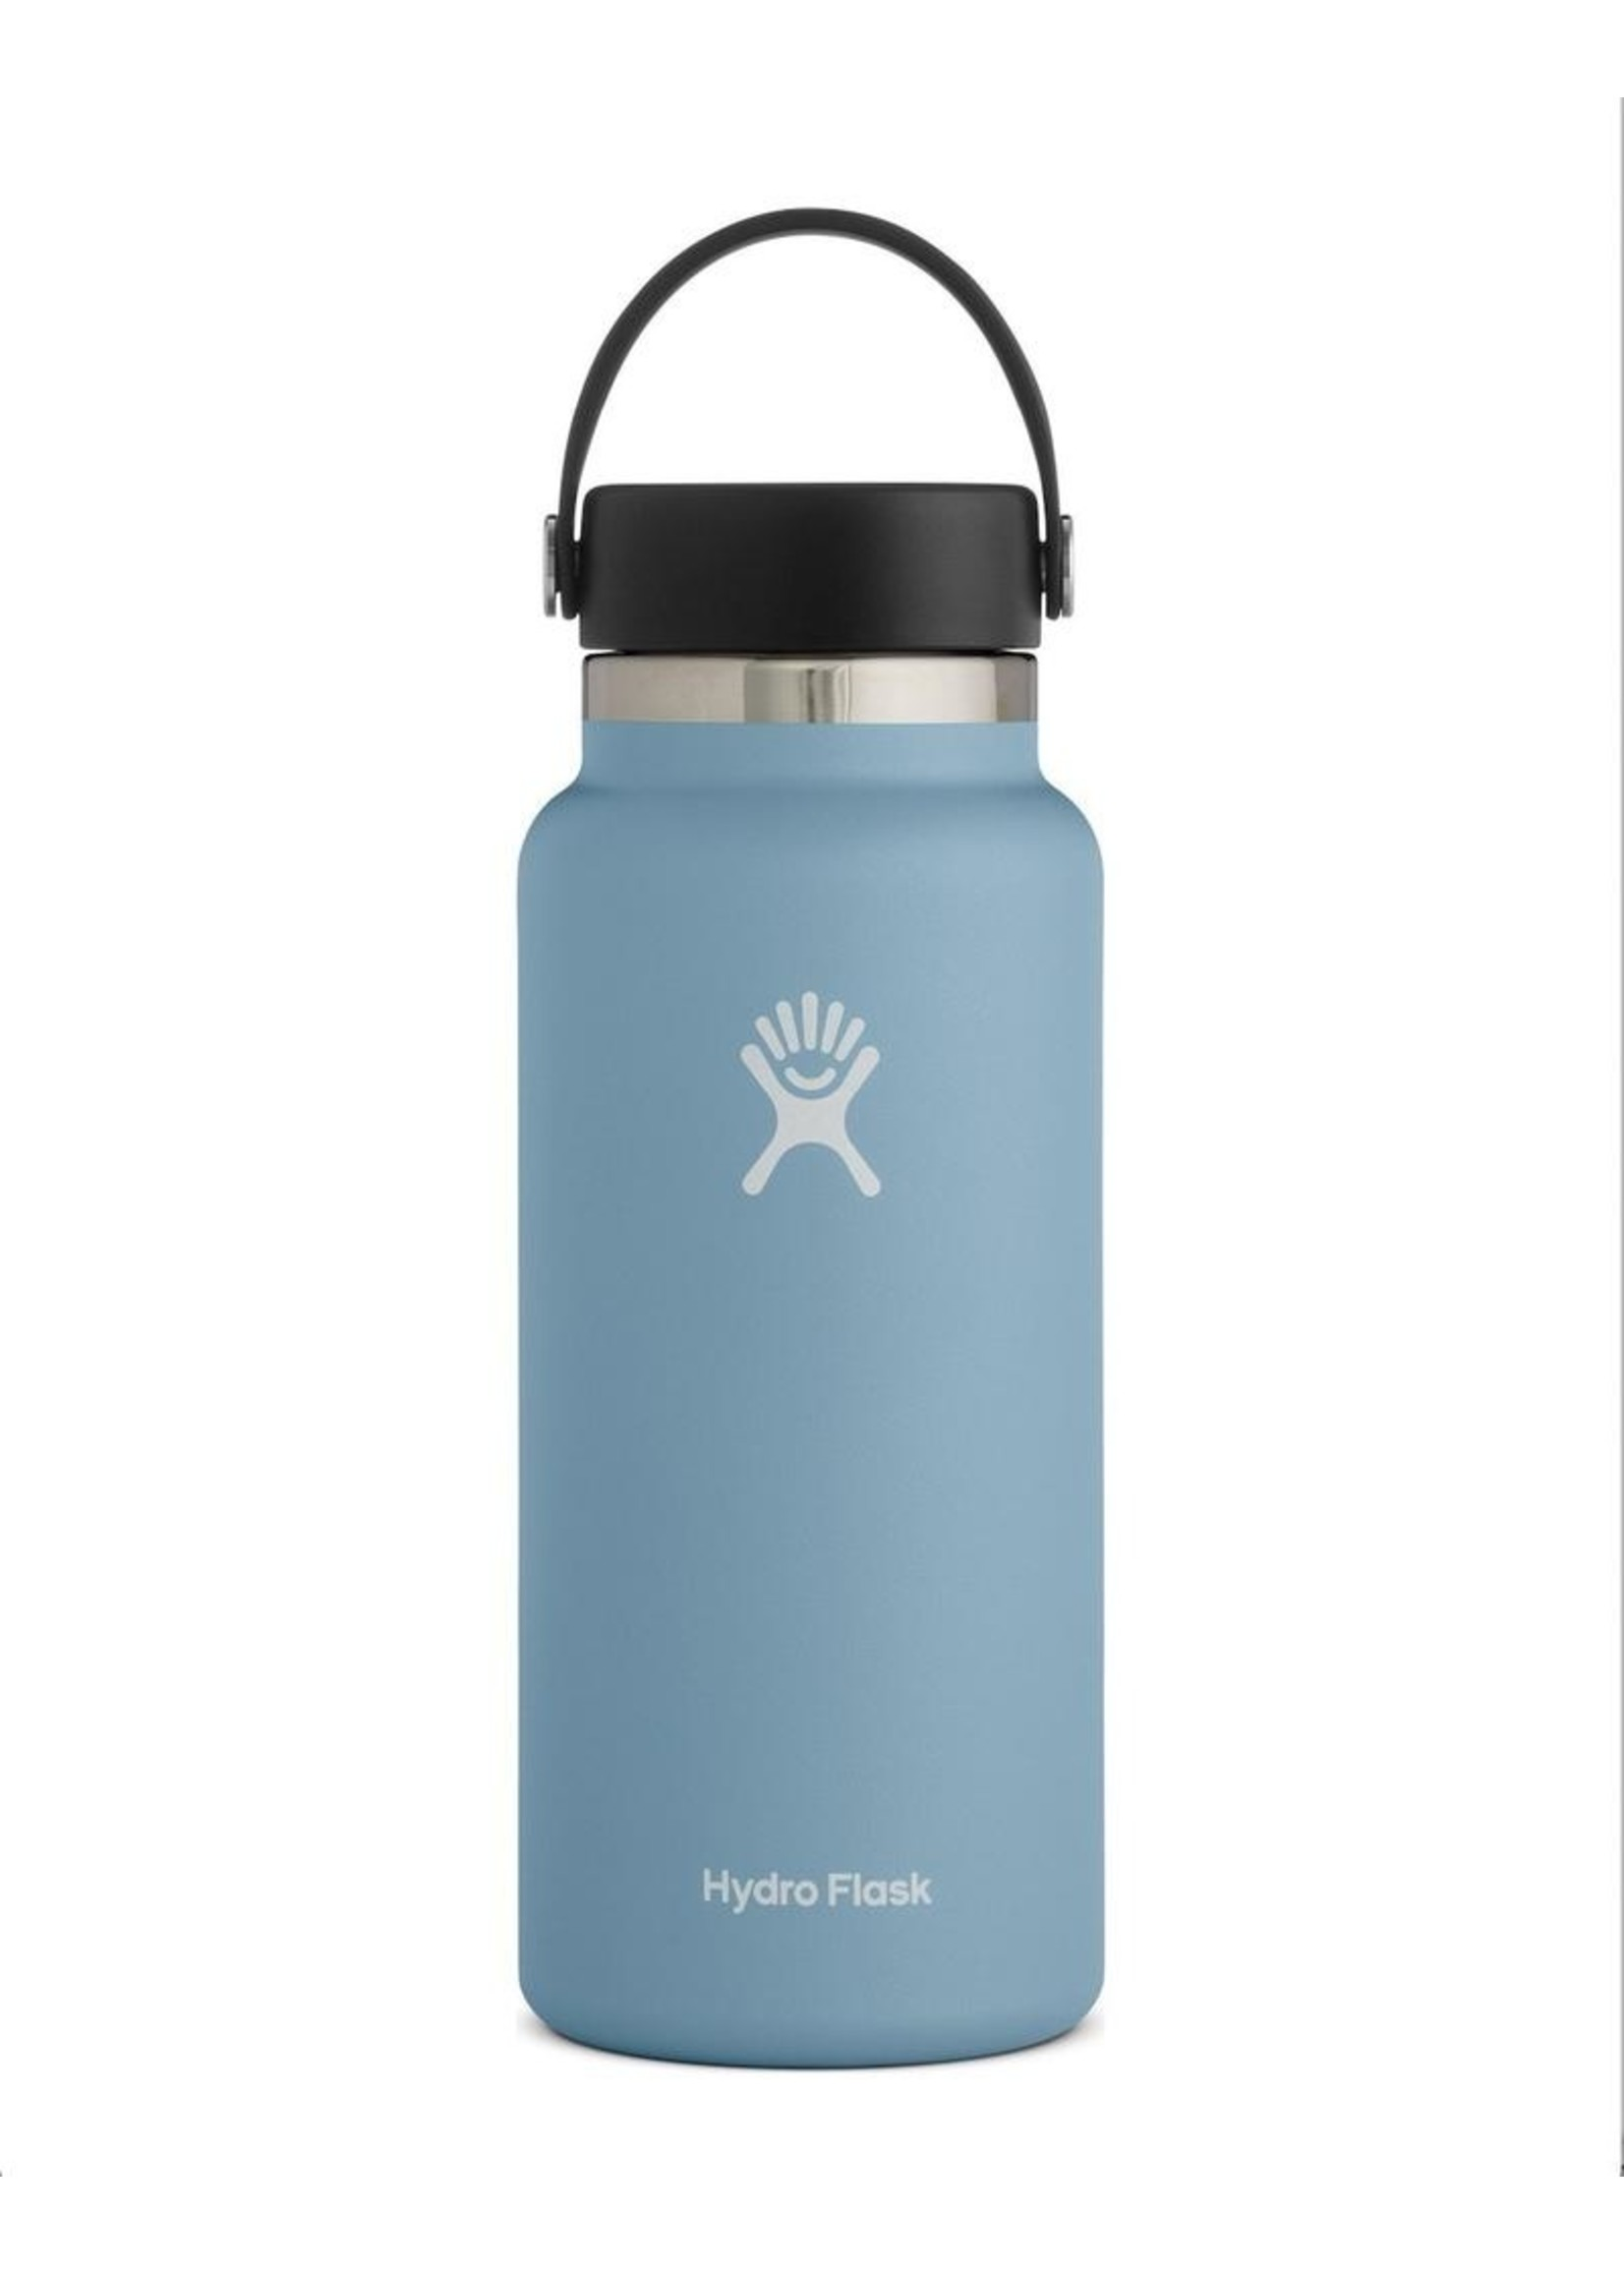 Hydro Flask Hydro Flask, 32 oz Wide Mouth 2.0  Flex Cap Insulated Stainless Steel Bottle in Rain